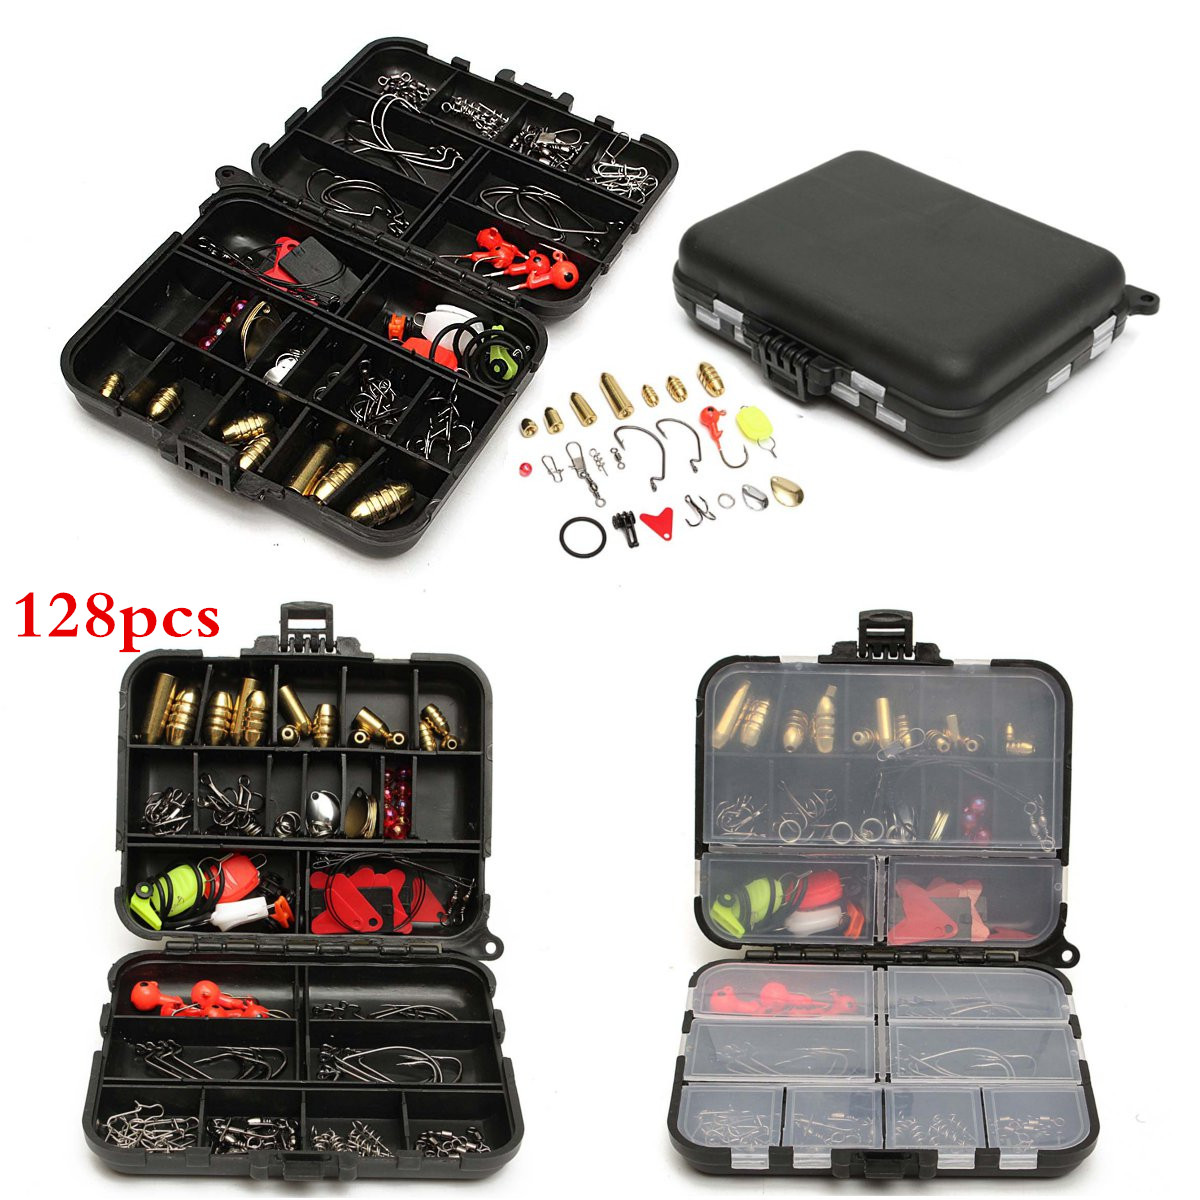 Meigar 128pcs Fishing Lures Hooks Baits Tackle Box Full Storage Case Tool Set for Sea Saltwater Freshwater